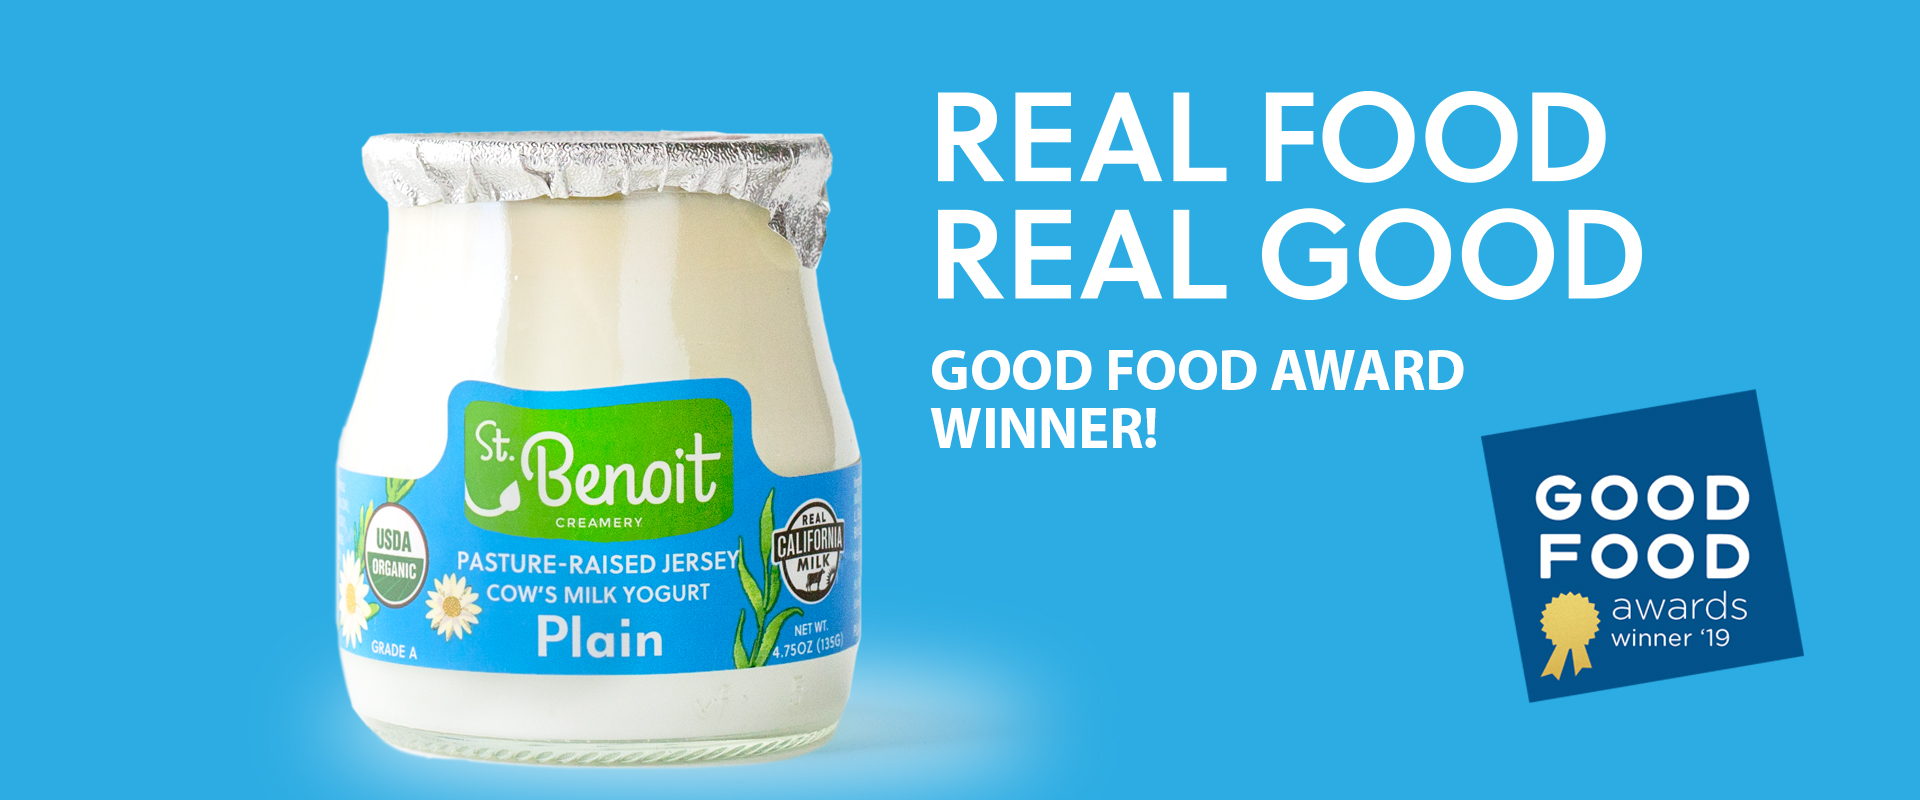 Image of St. Benoit Yogurt with an award winner logo